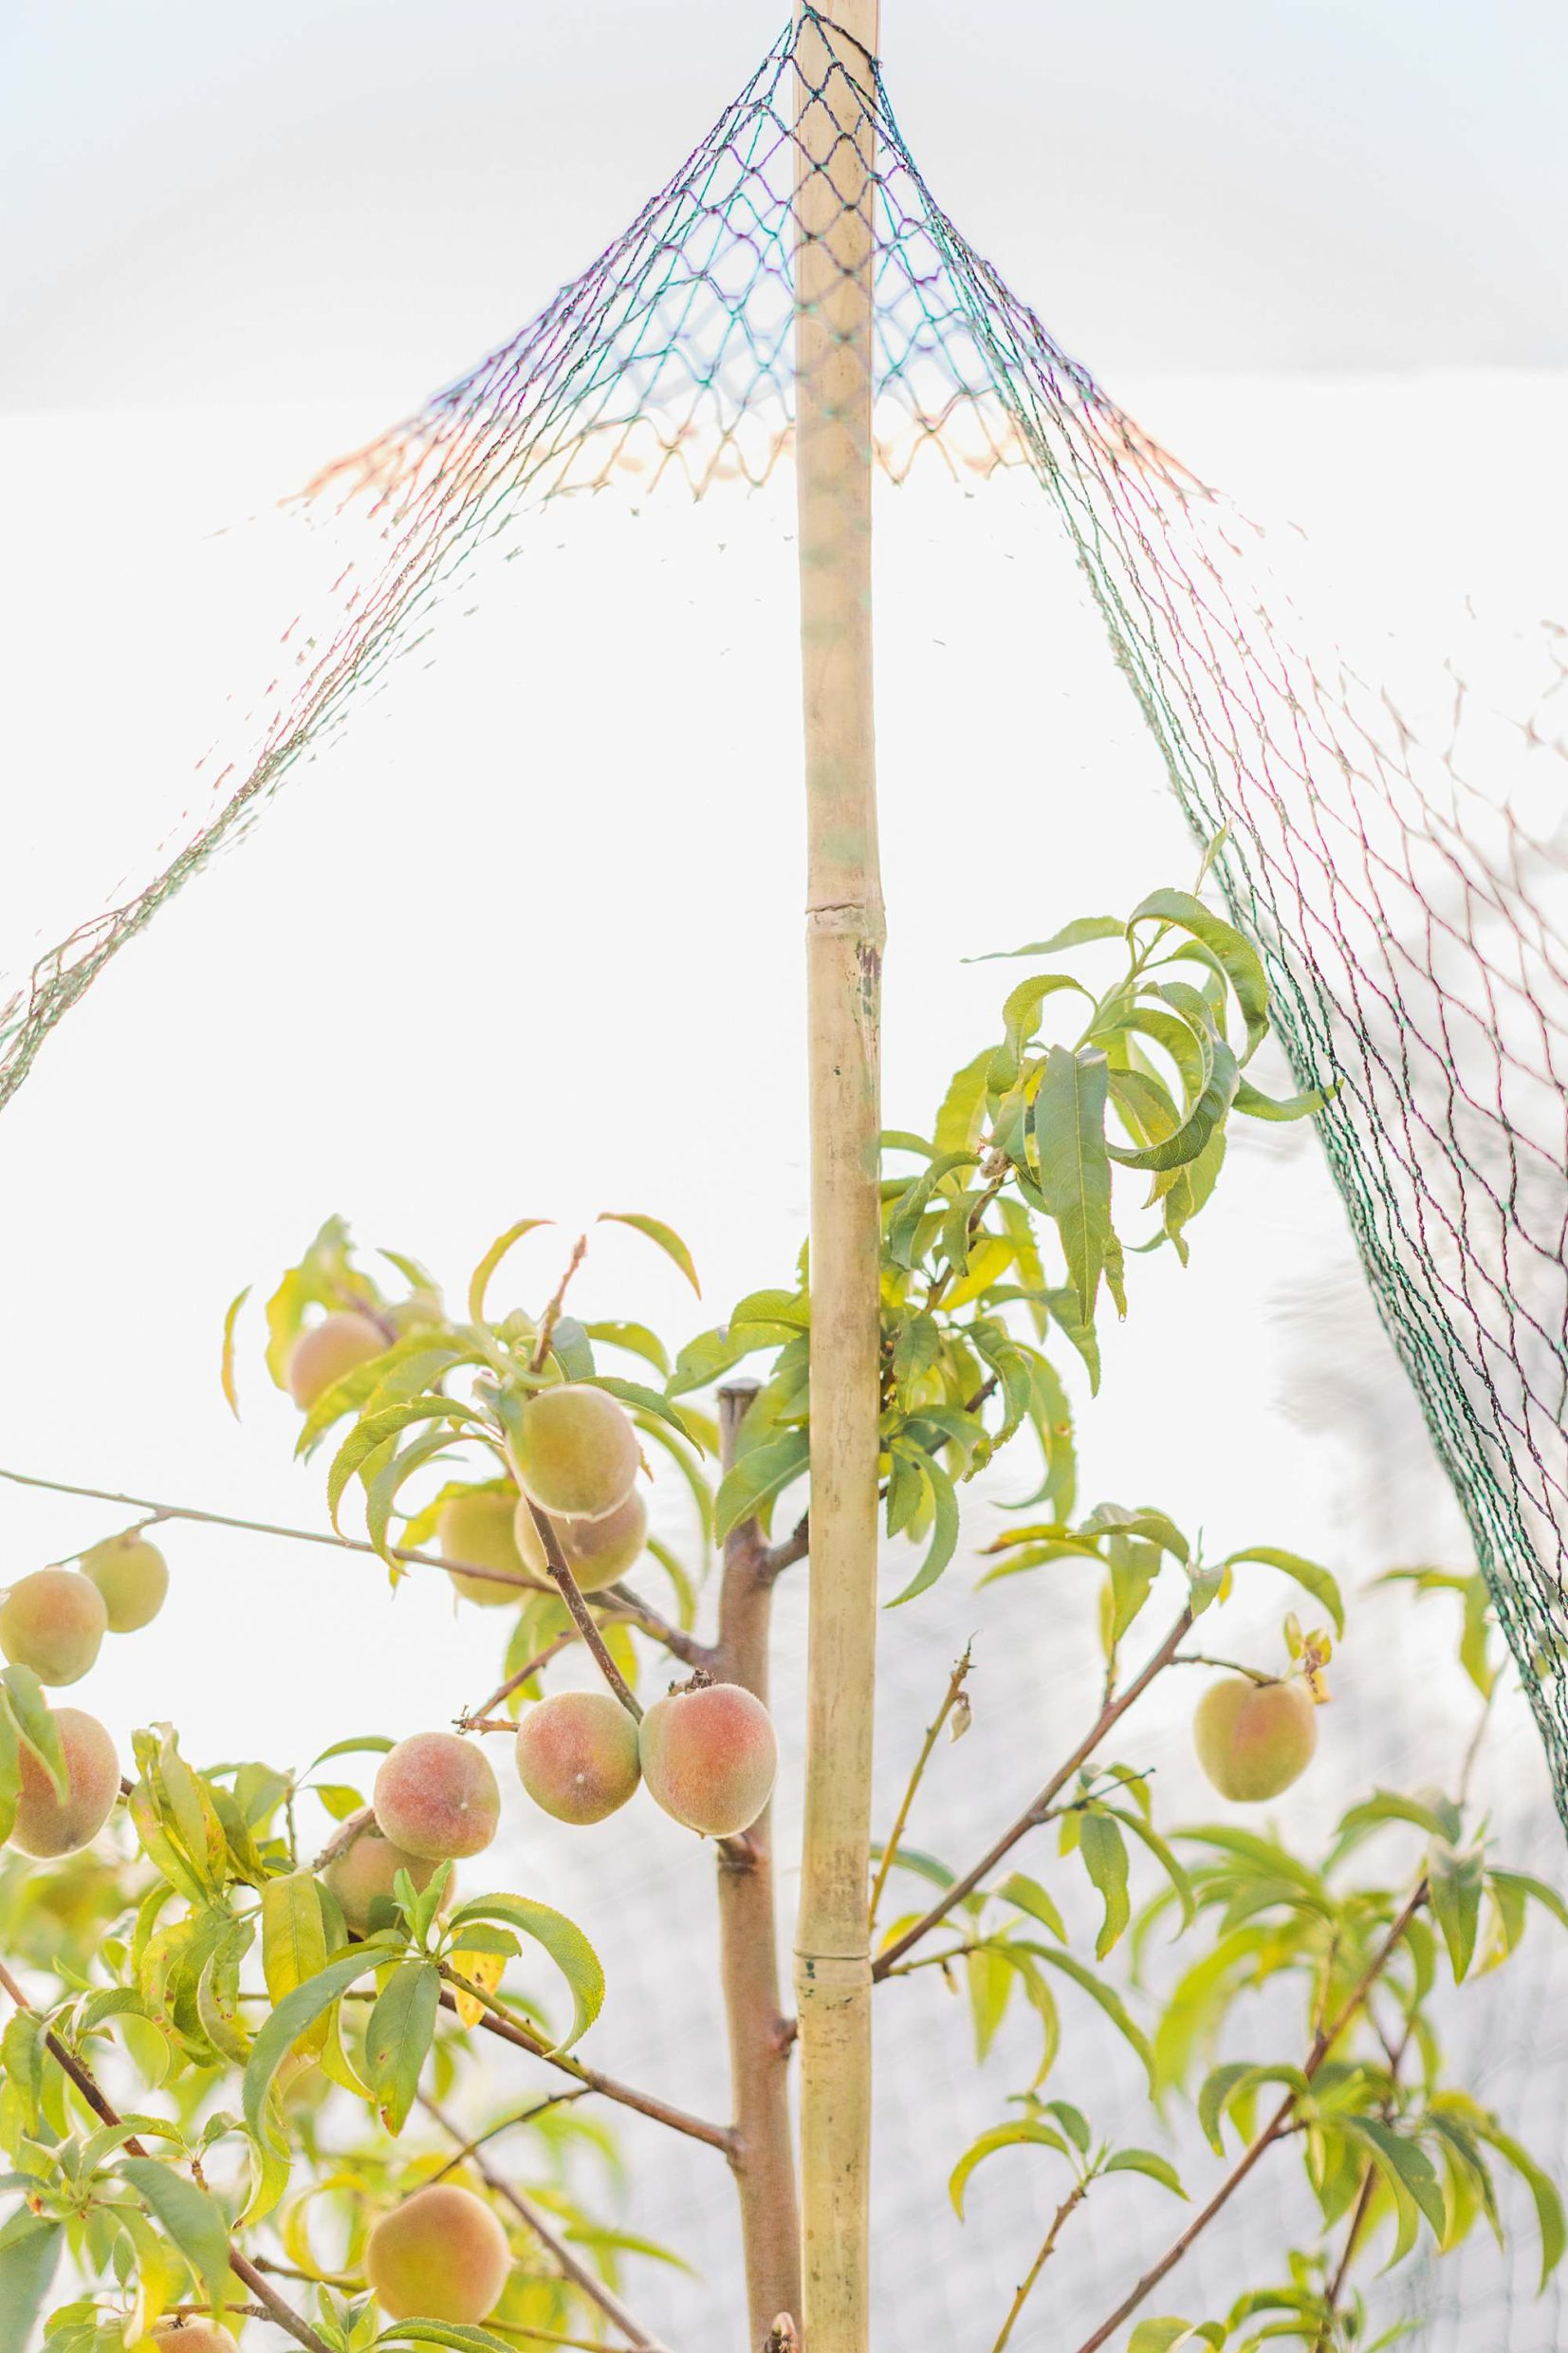 taking care of peaches before they ripen with bird netting and bamboo stakes